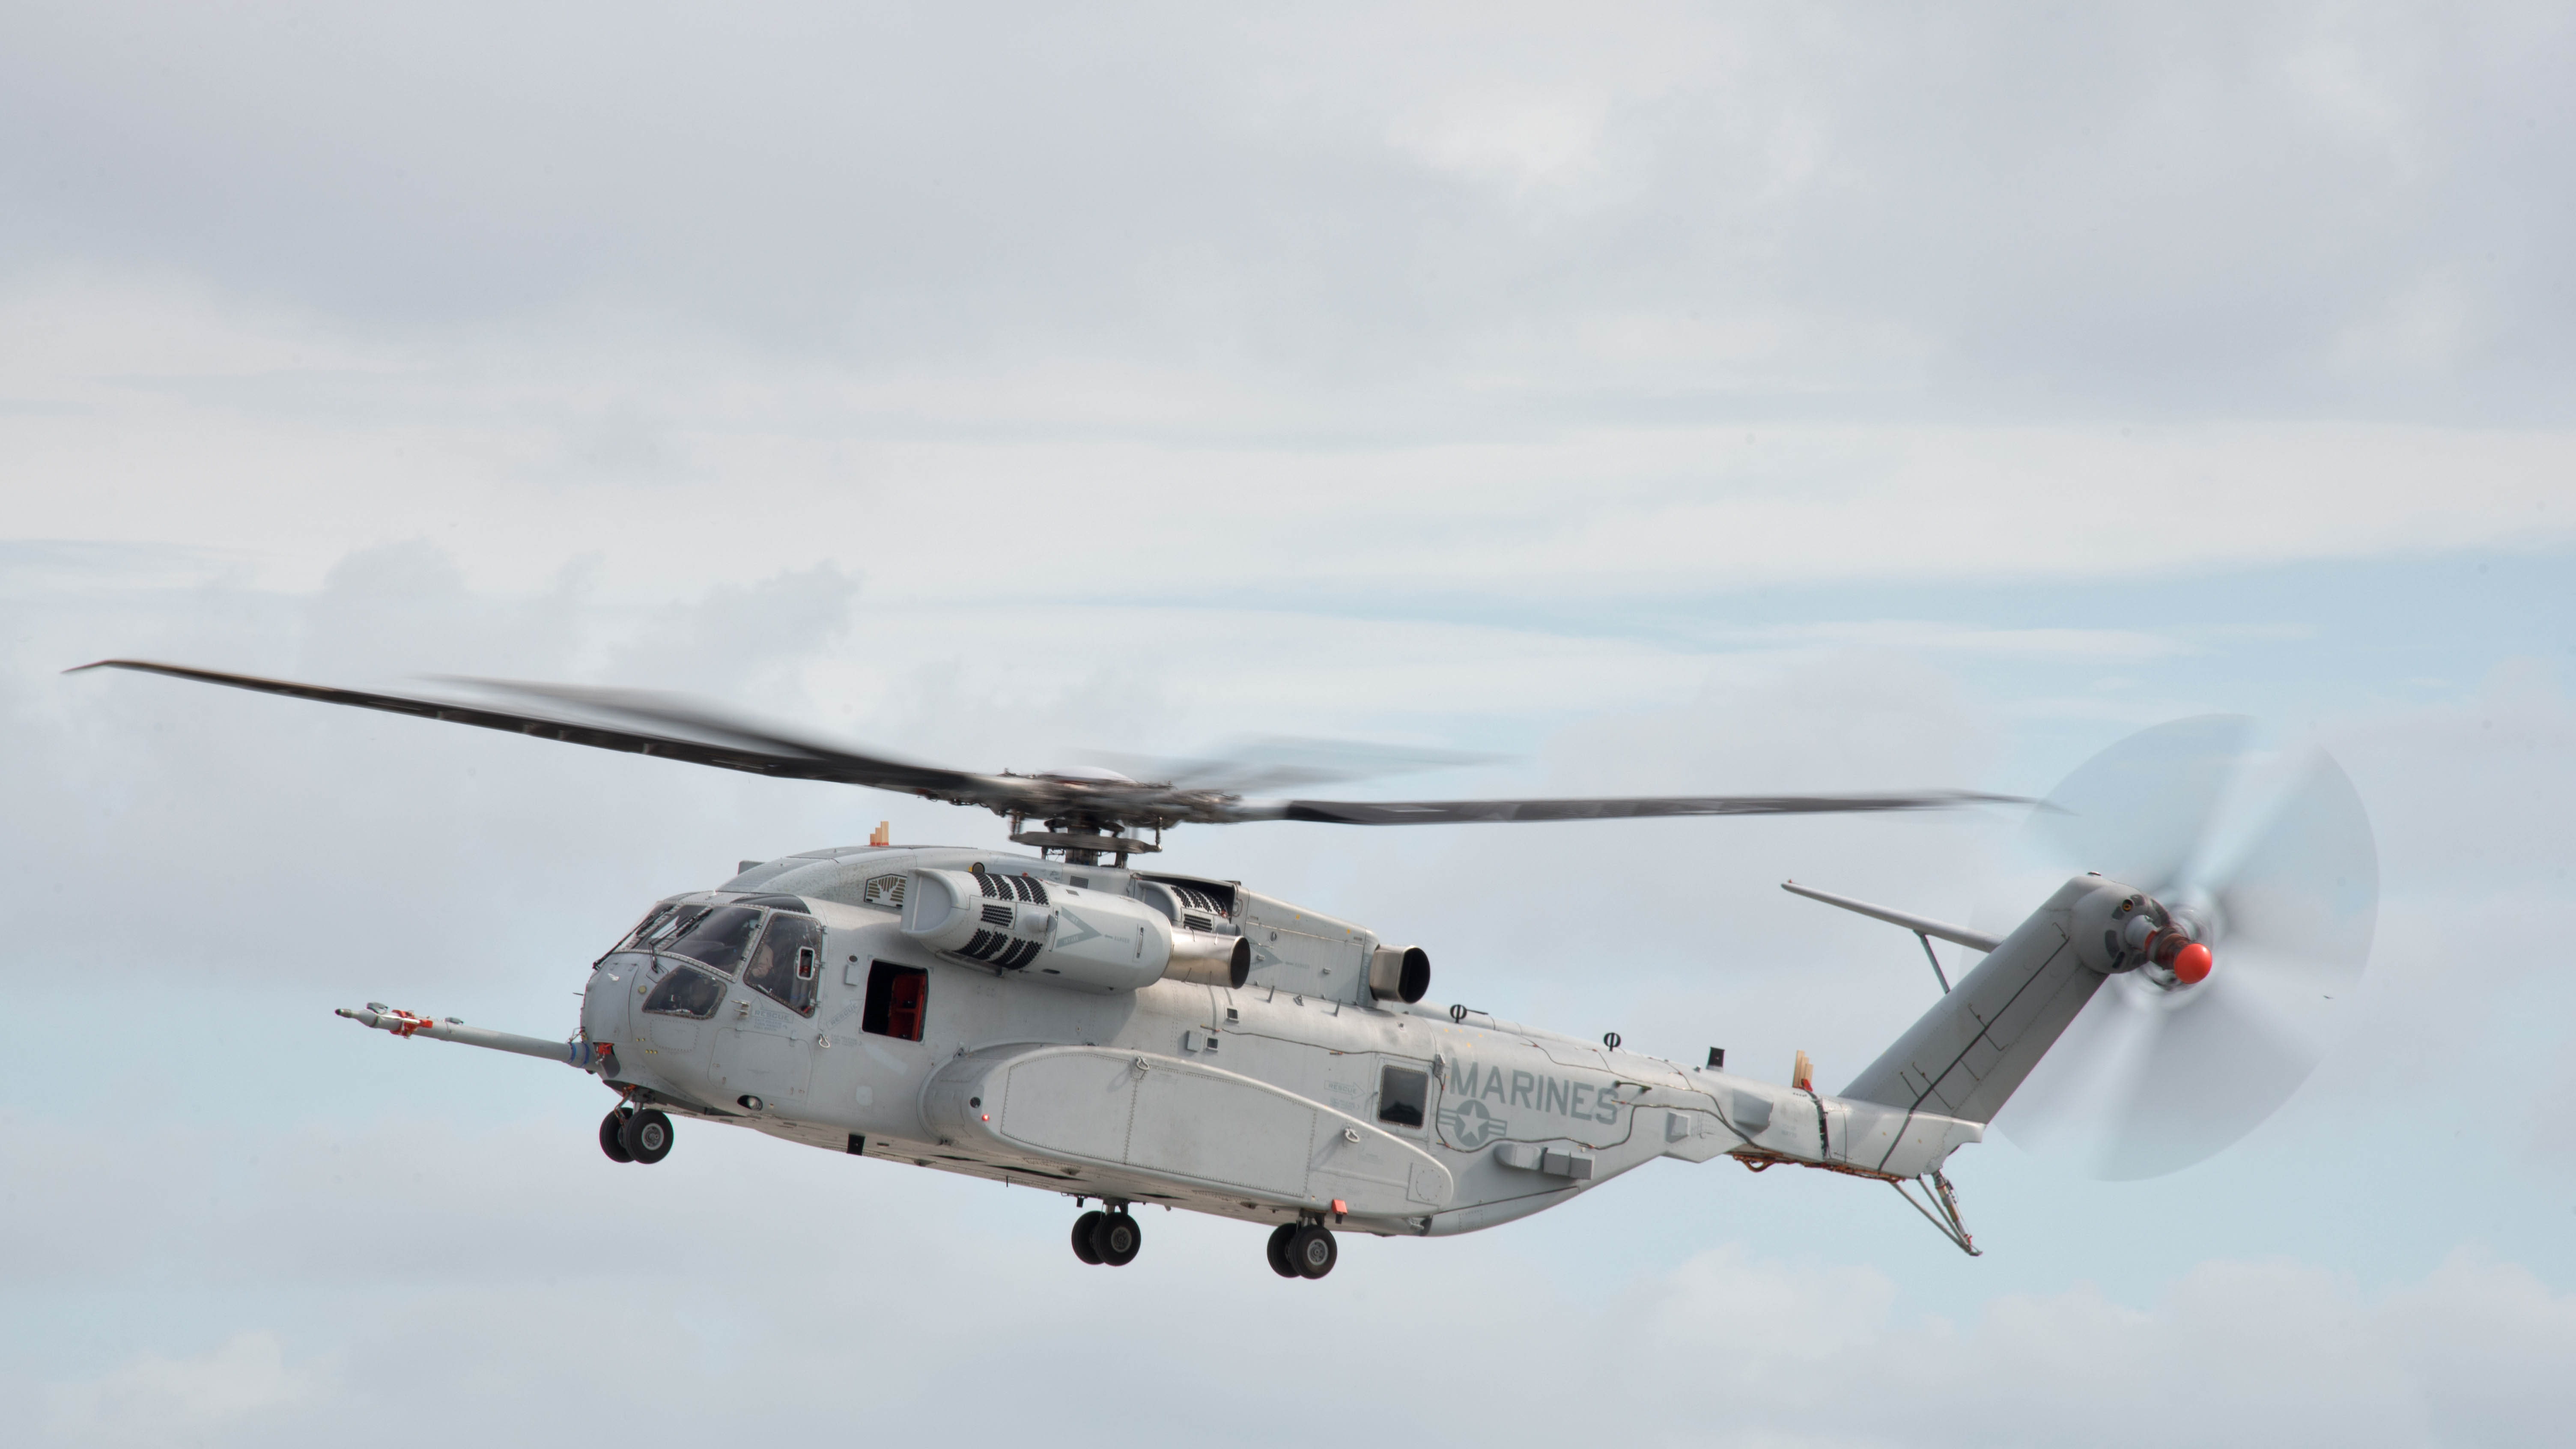 ch 53k helicopter with Marine Corps Pilot Continues 112 Year Old Tradition Flies New King Stallion on 137801853282 as well Sikorsky Wins Us Navy Contract To Replace Marine One Helicopter Fleet 59527 besides H 53 Pics additionally 2150191 together with Ch53k The Us Marines Hlr Helicopter Program Updated 01724.